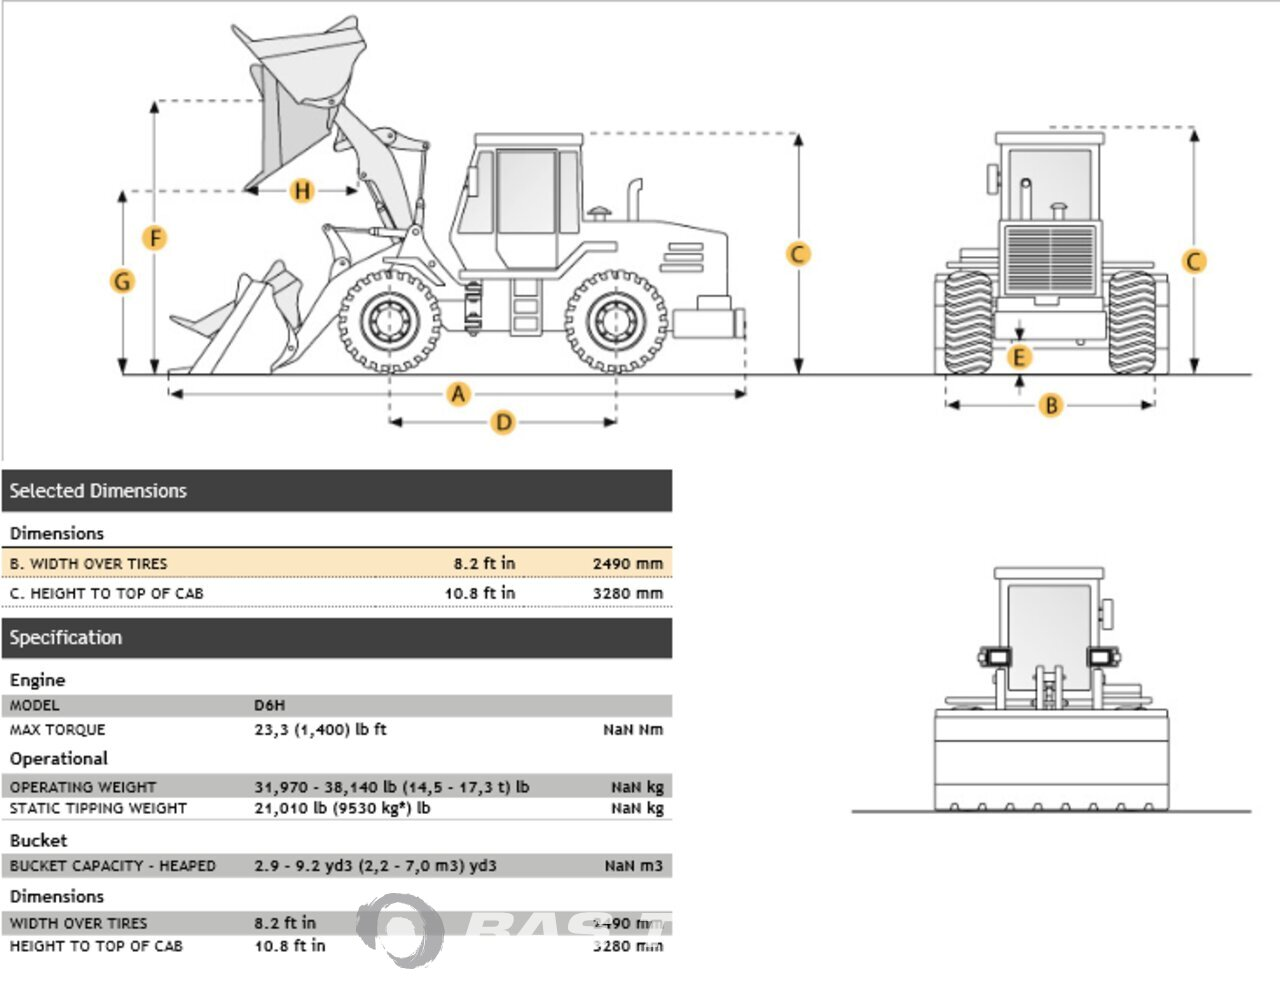 volvo l90f wiring diagram wiring diagram for you volvo l90 wiring diagram volvo l90f wiring diagram [ 1280 x 981 Pixel ]